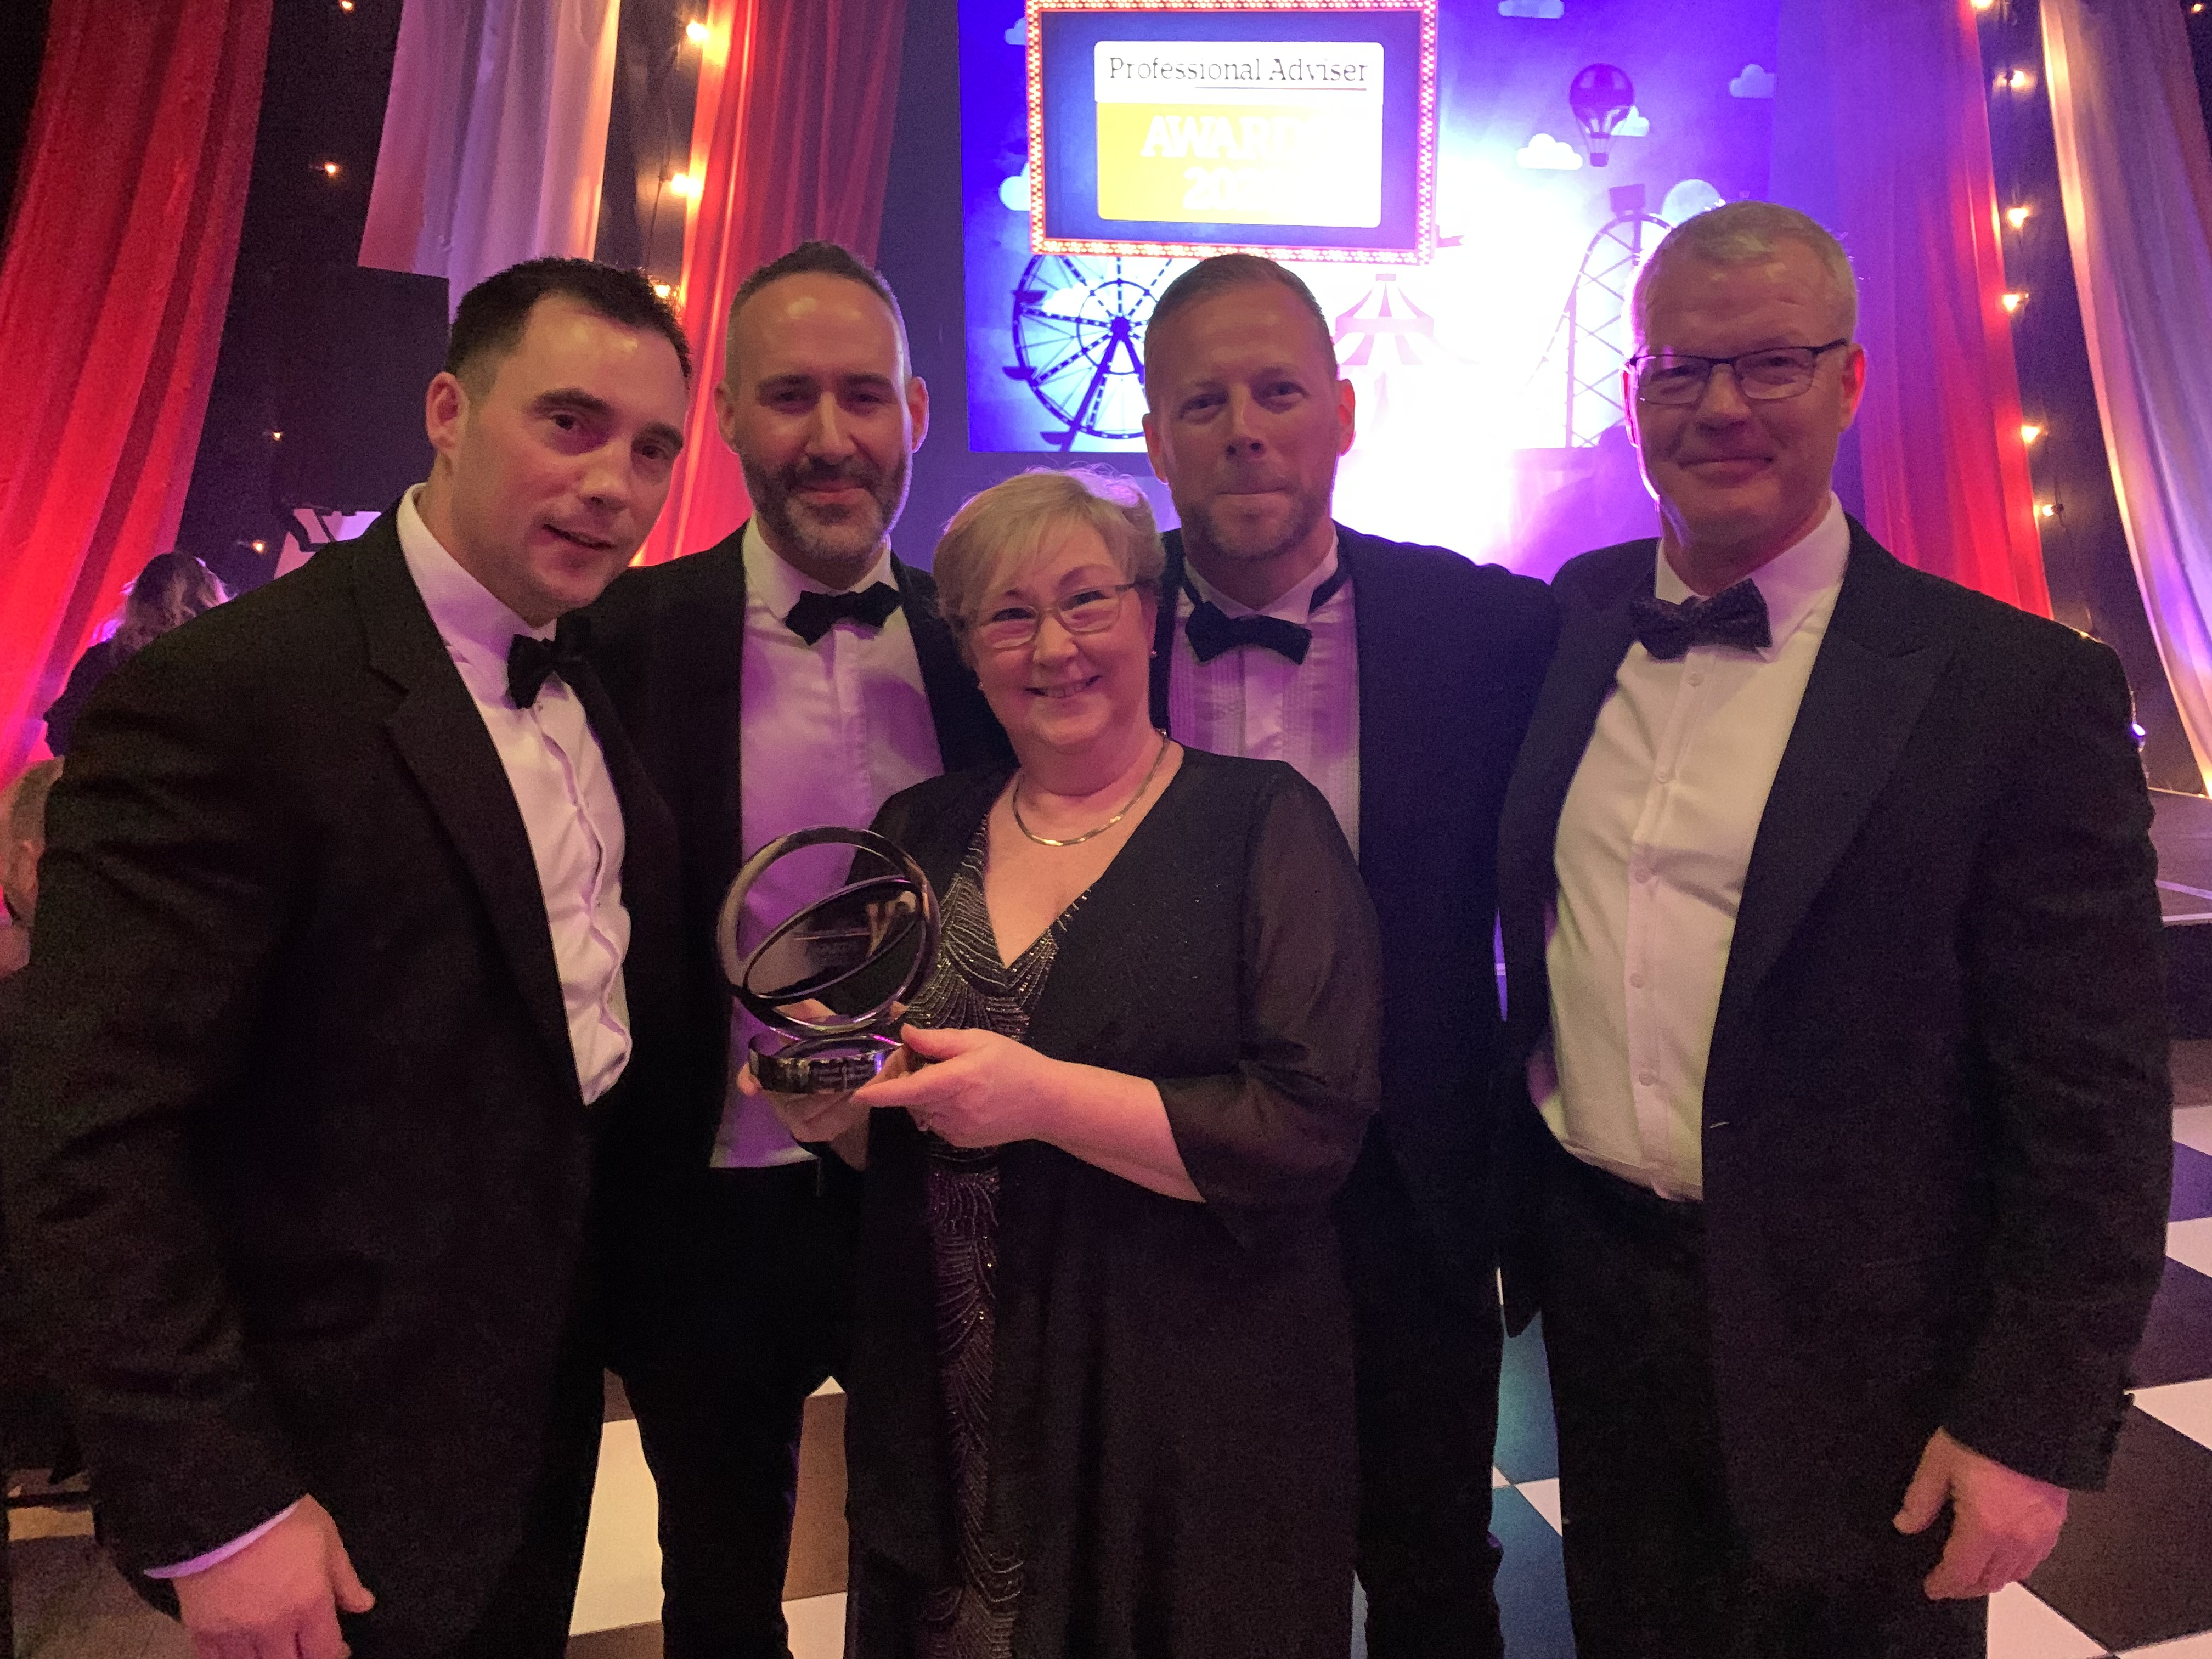 Foster Denovo win at Professional Adviser awards